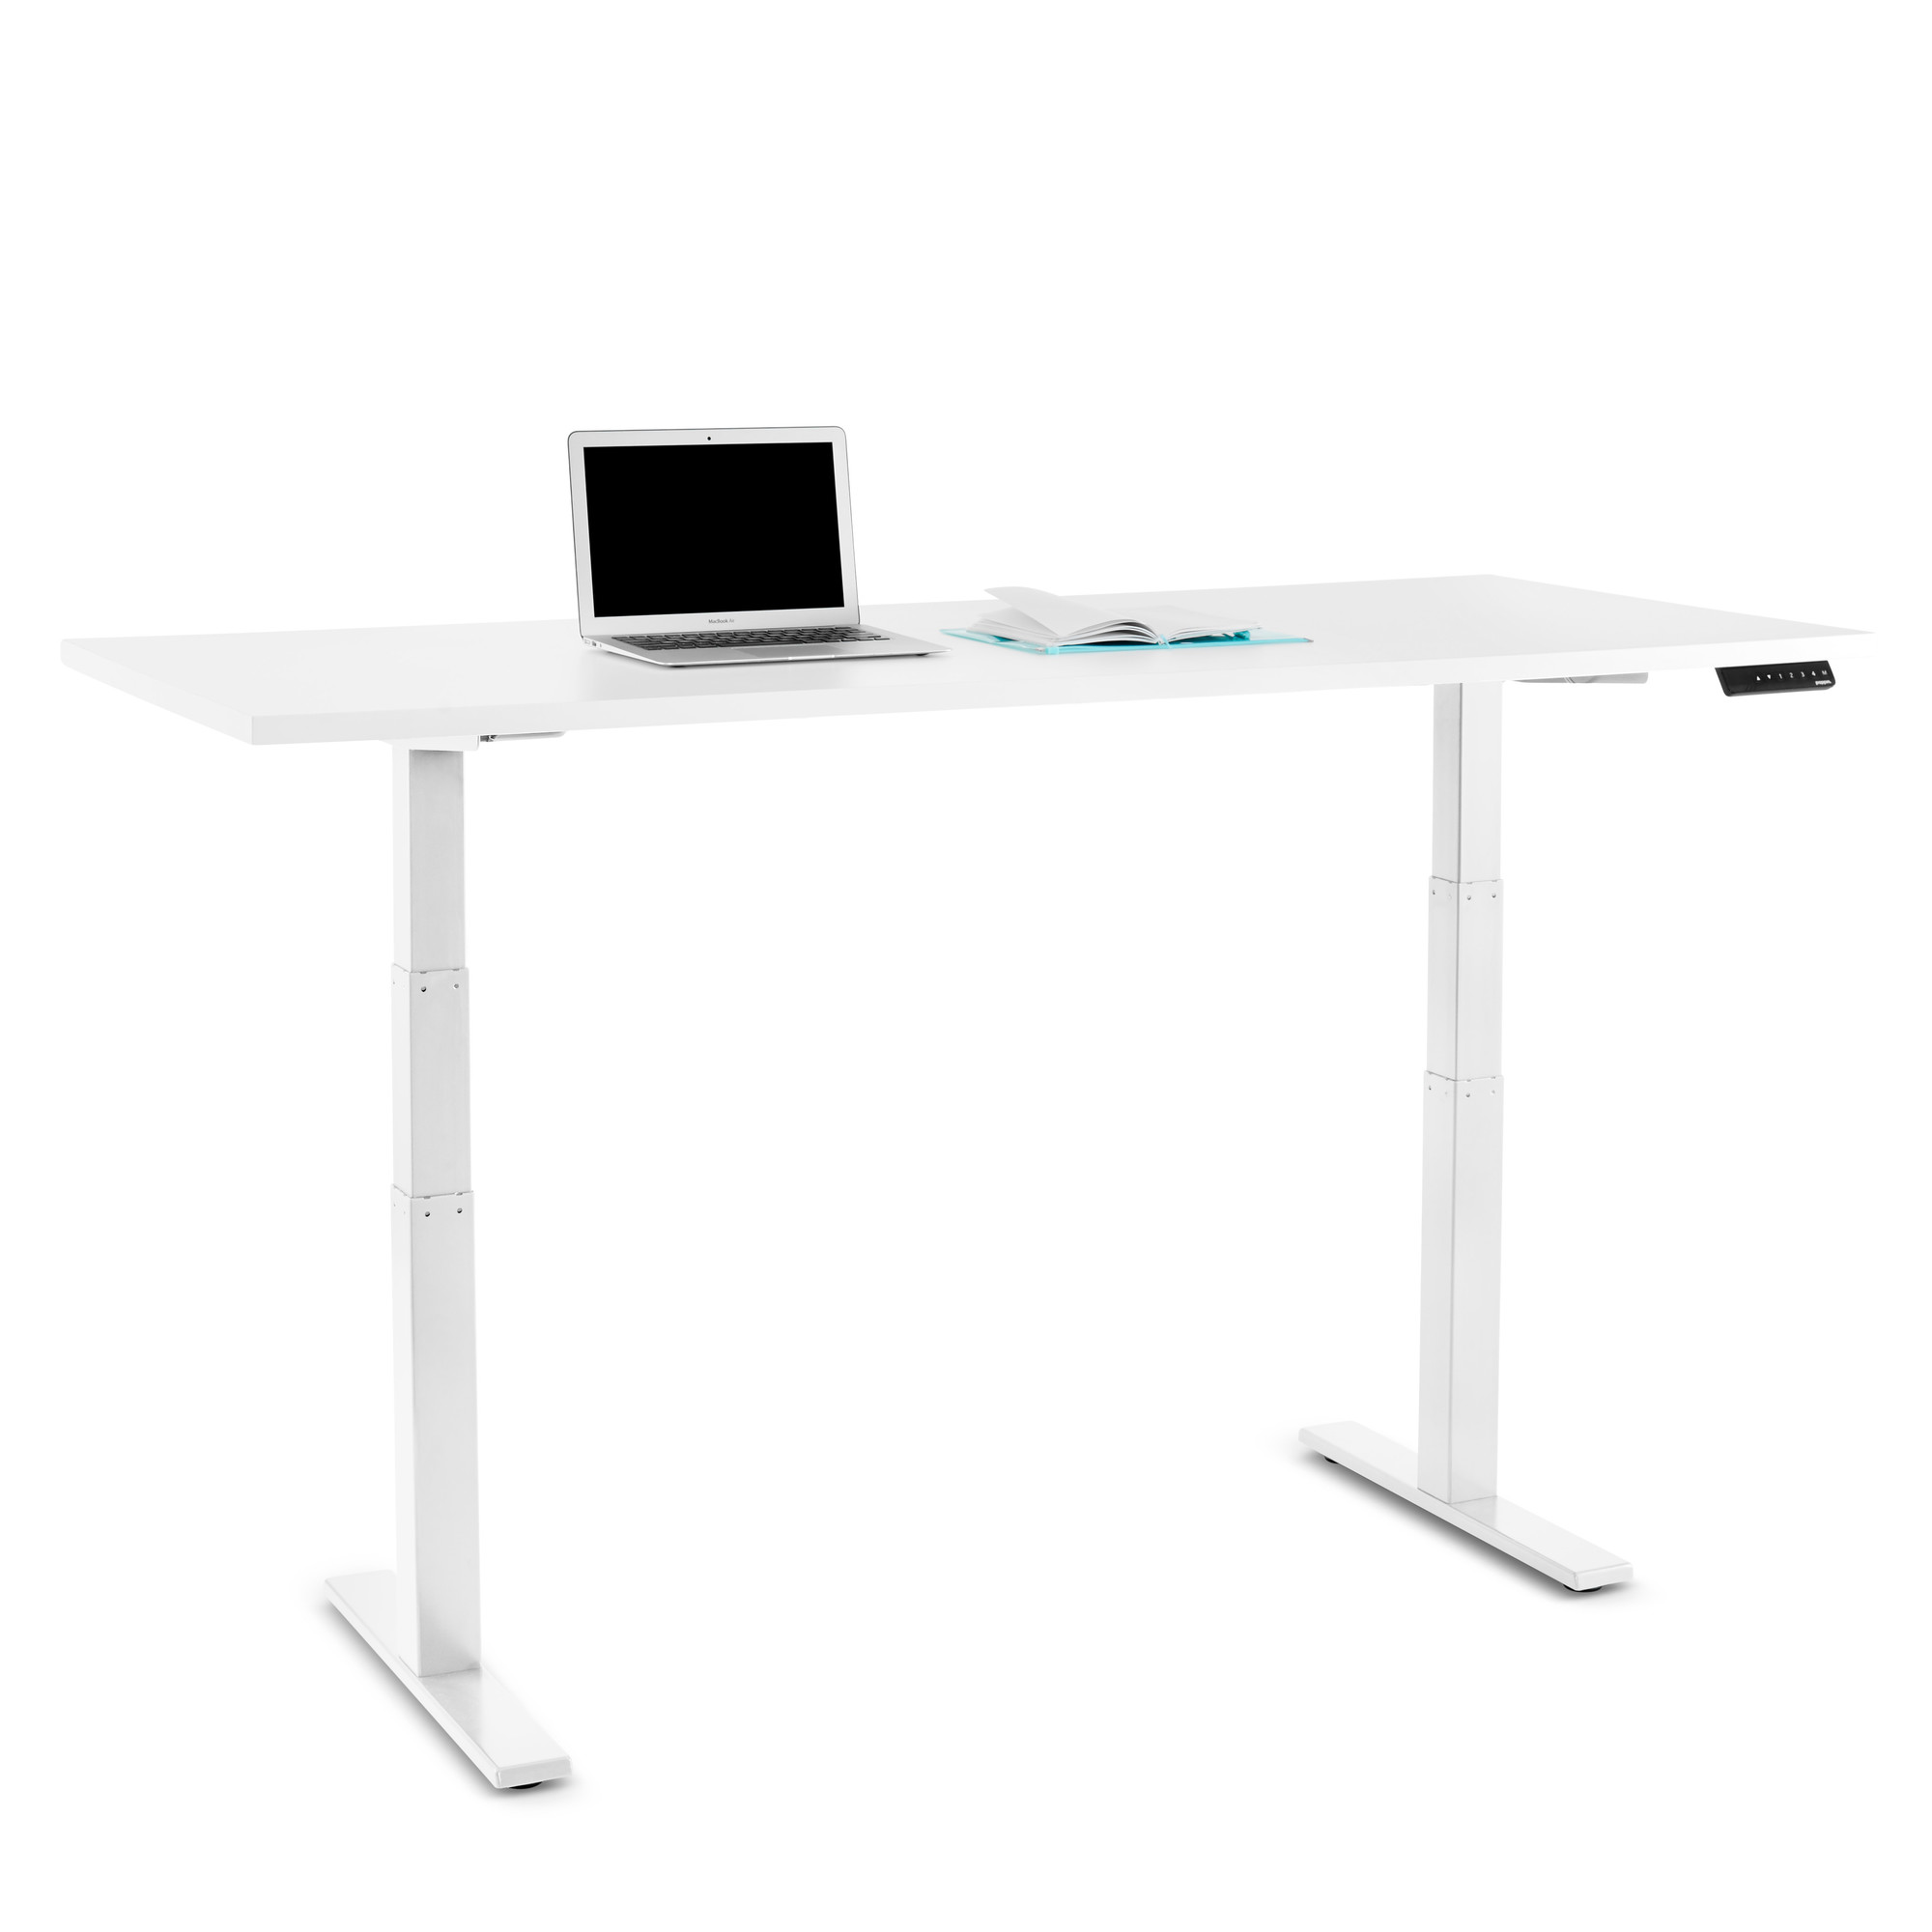 about legs folding tables t all product kensington leg desk enwork on adjustable casters maple value